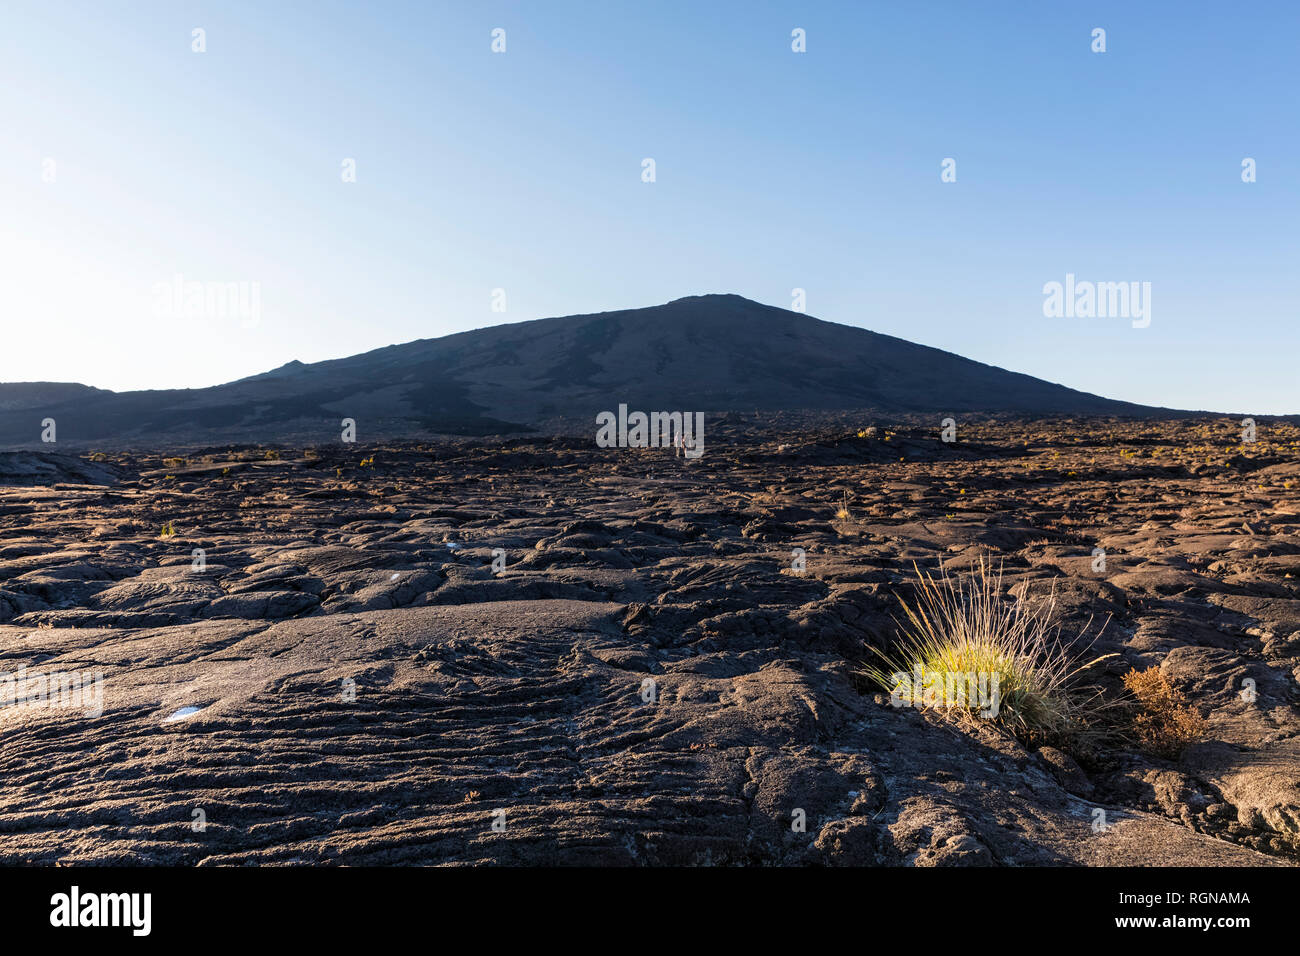 Reunion, Reunion National Park, Shield Volcano Piton de la Fournaise, Caldera Enclos Fouque and Rempart, lava field, Tourists in lava field, AA lava over pahoehoe lava - Stock Image